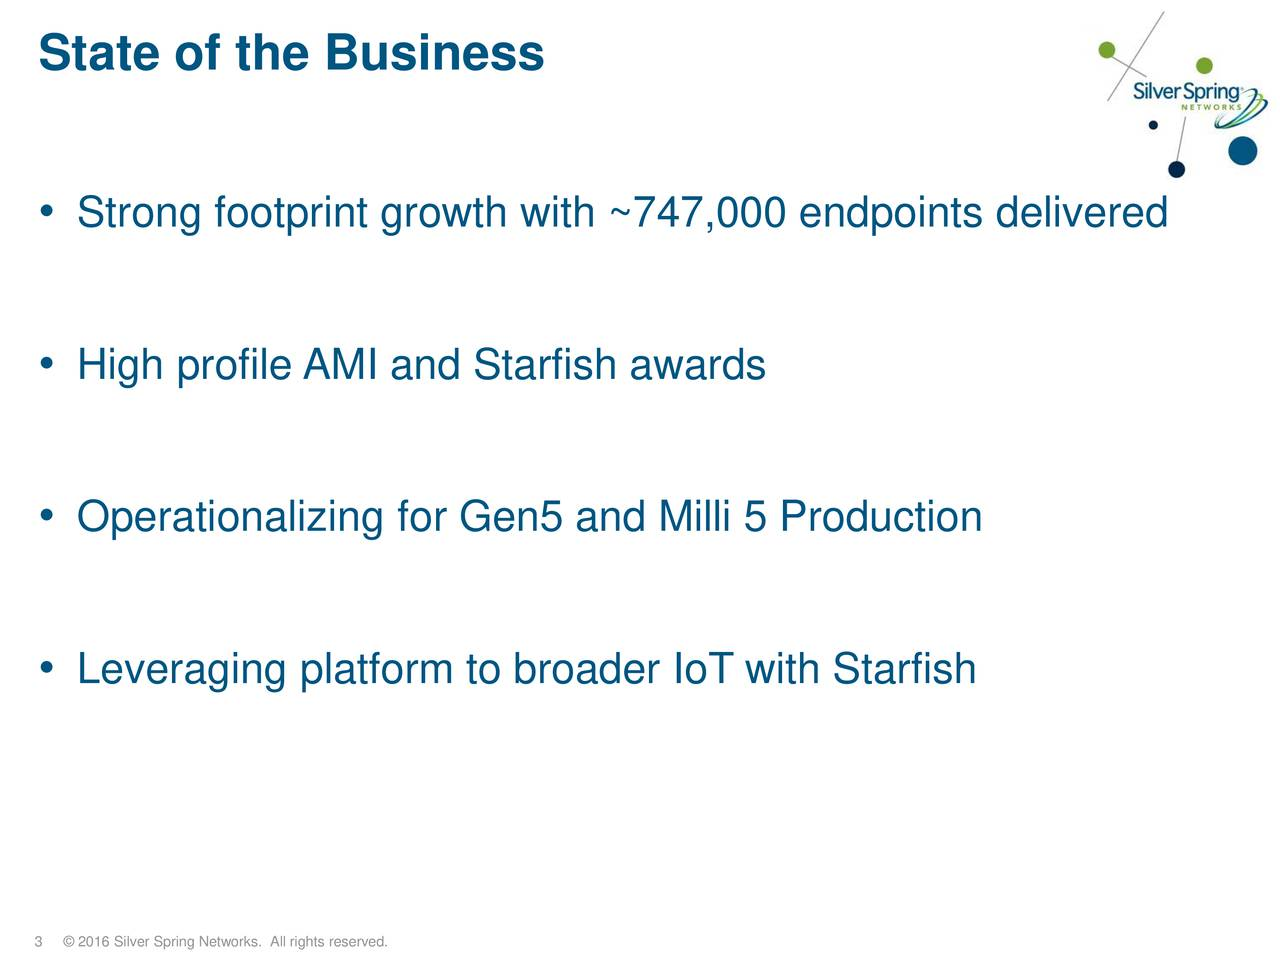 Strong footprint growth with ~747,000 endpoints delivered High profile AMI and Starfish awards Operationalizing for Gen5 and Milli 5 Production Leveraging platform to broader IoT with Starfish